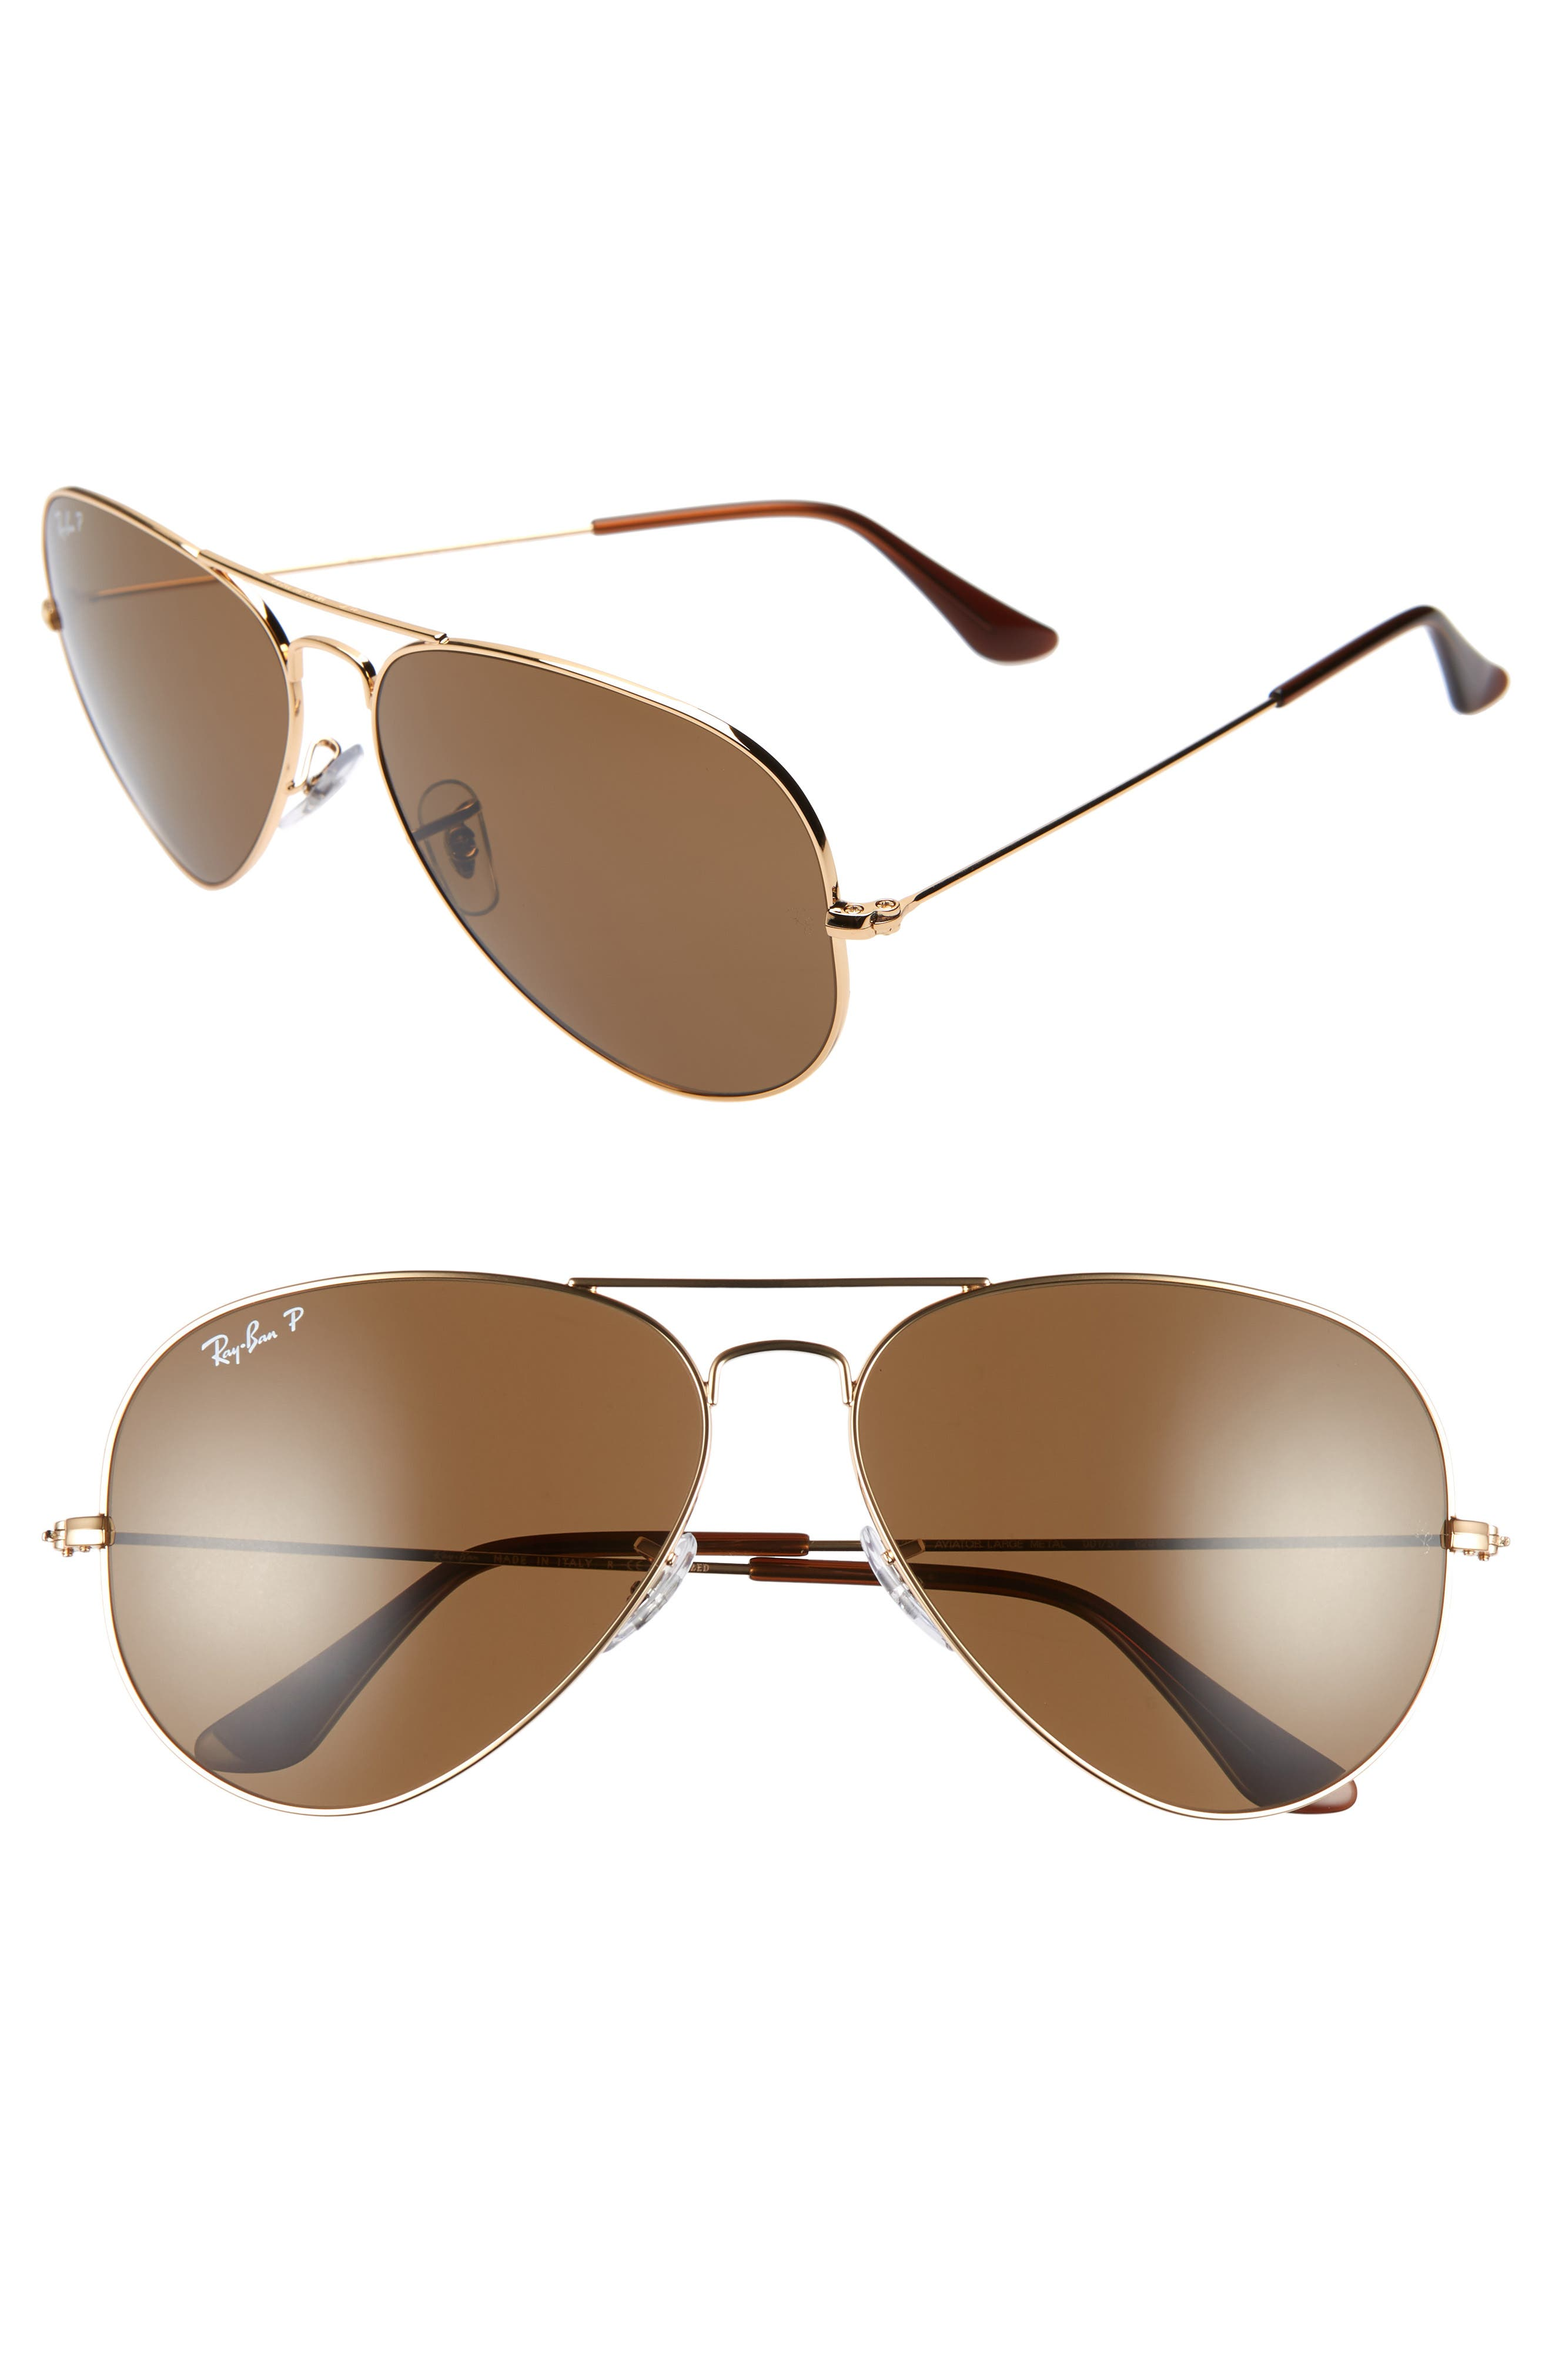 Ray-Ban Original 62Mm Oversize Polarized Aviator Sunglasses - Gold/ Brown Solid